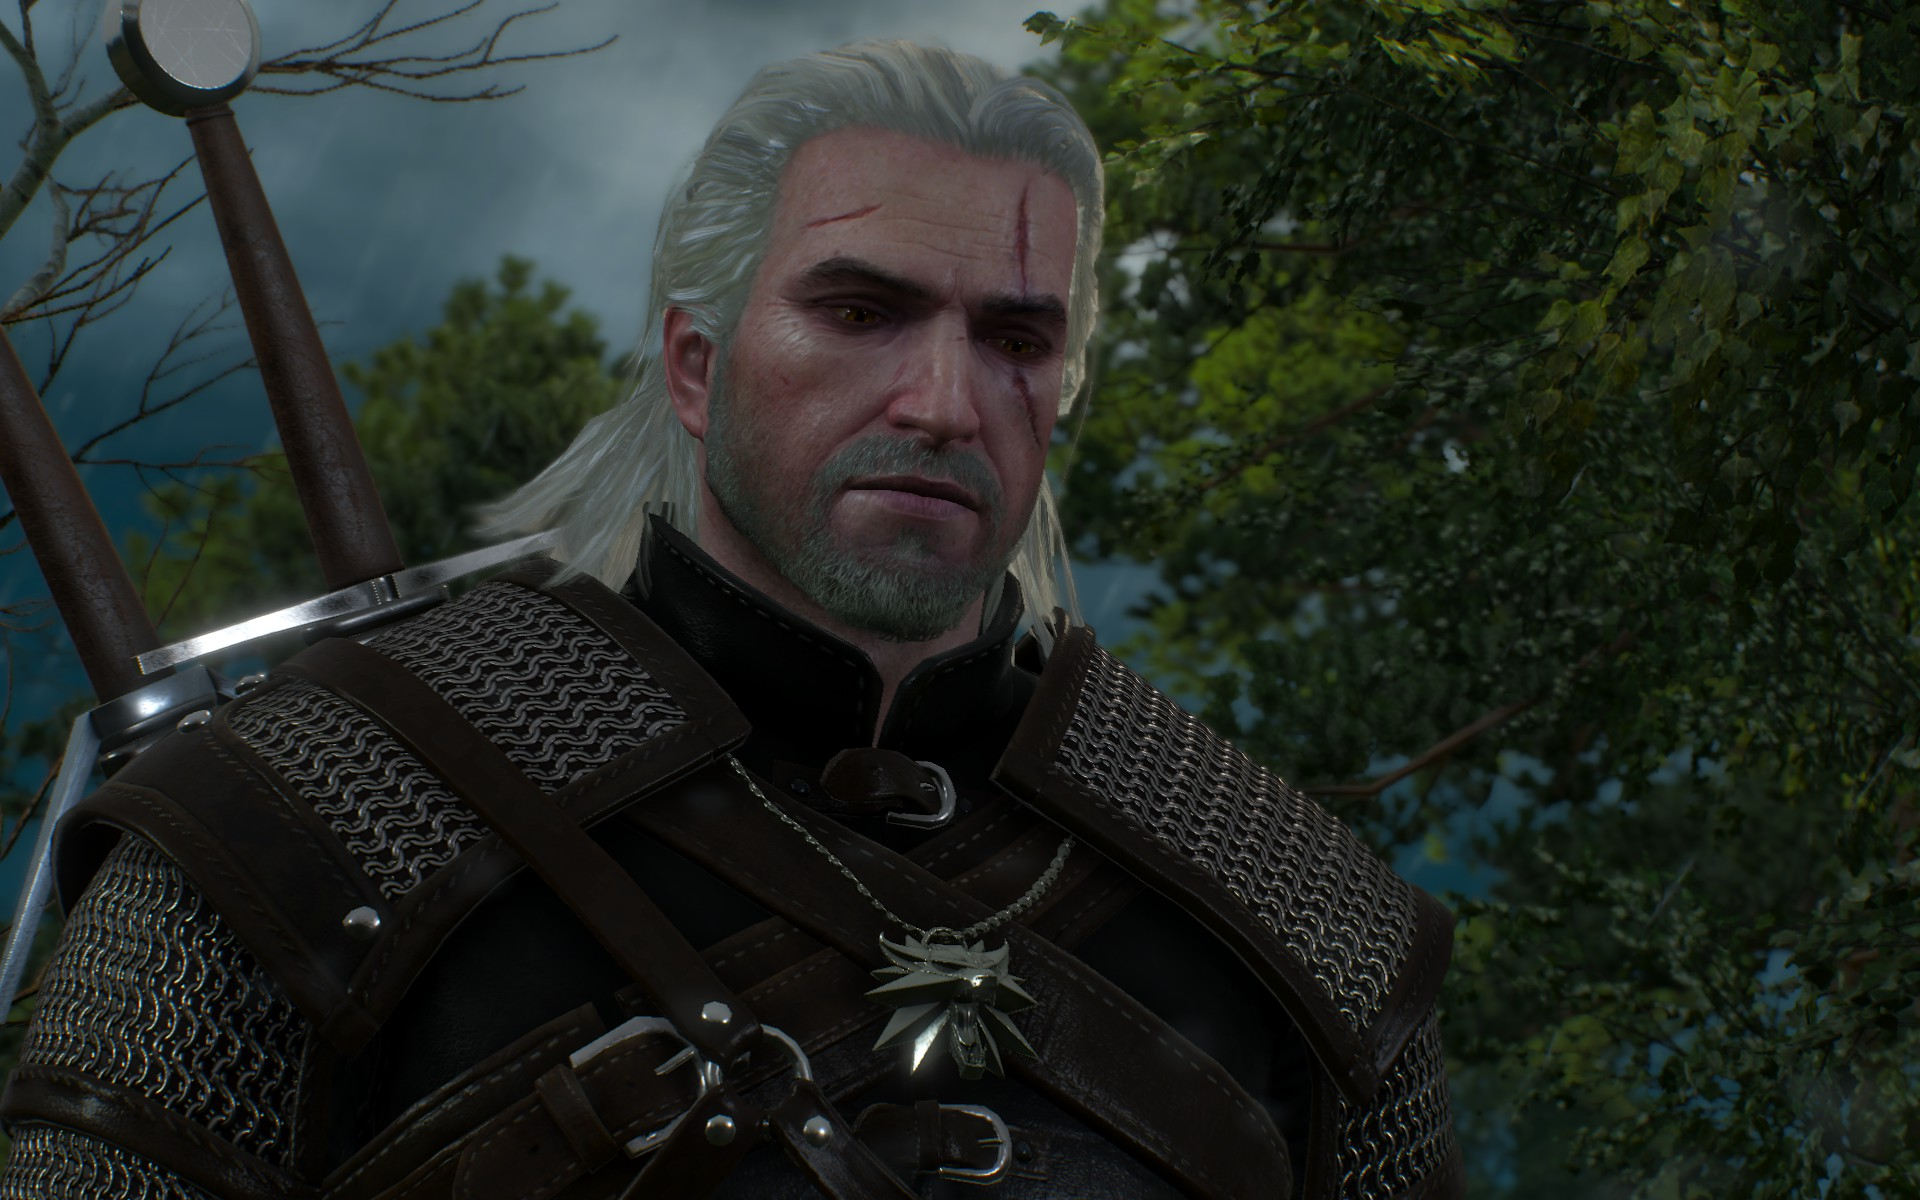 Witcher 3 Hair Styles: 5 Strange Things To Love About The Witcher 3